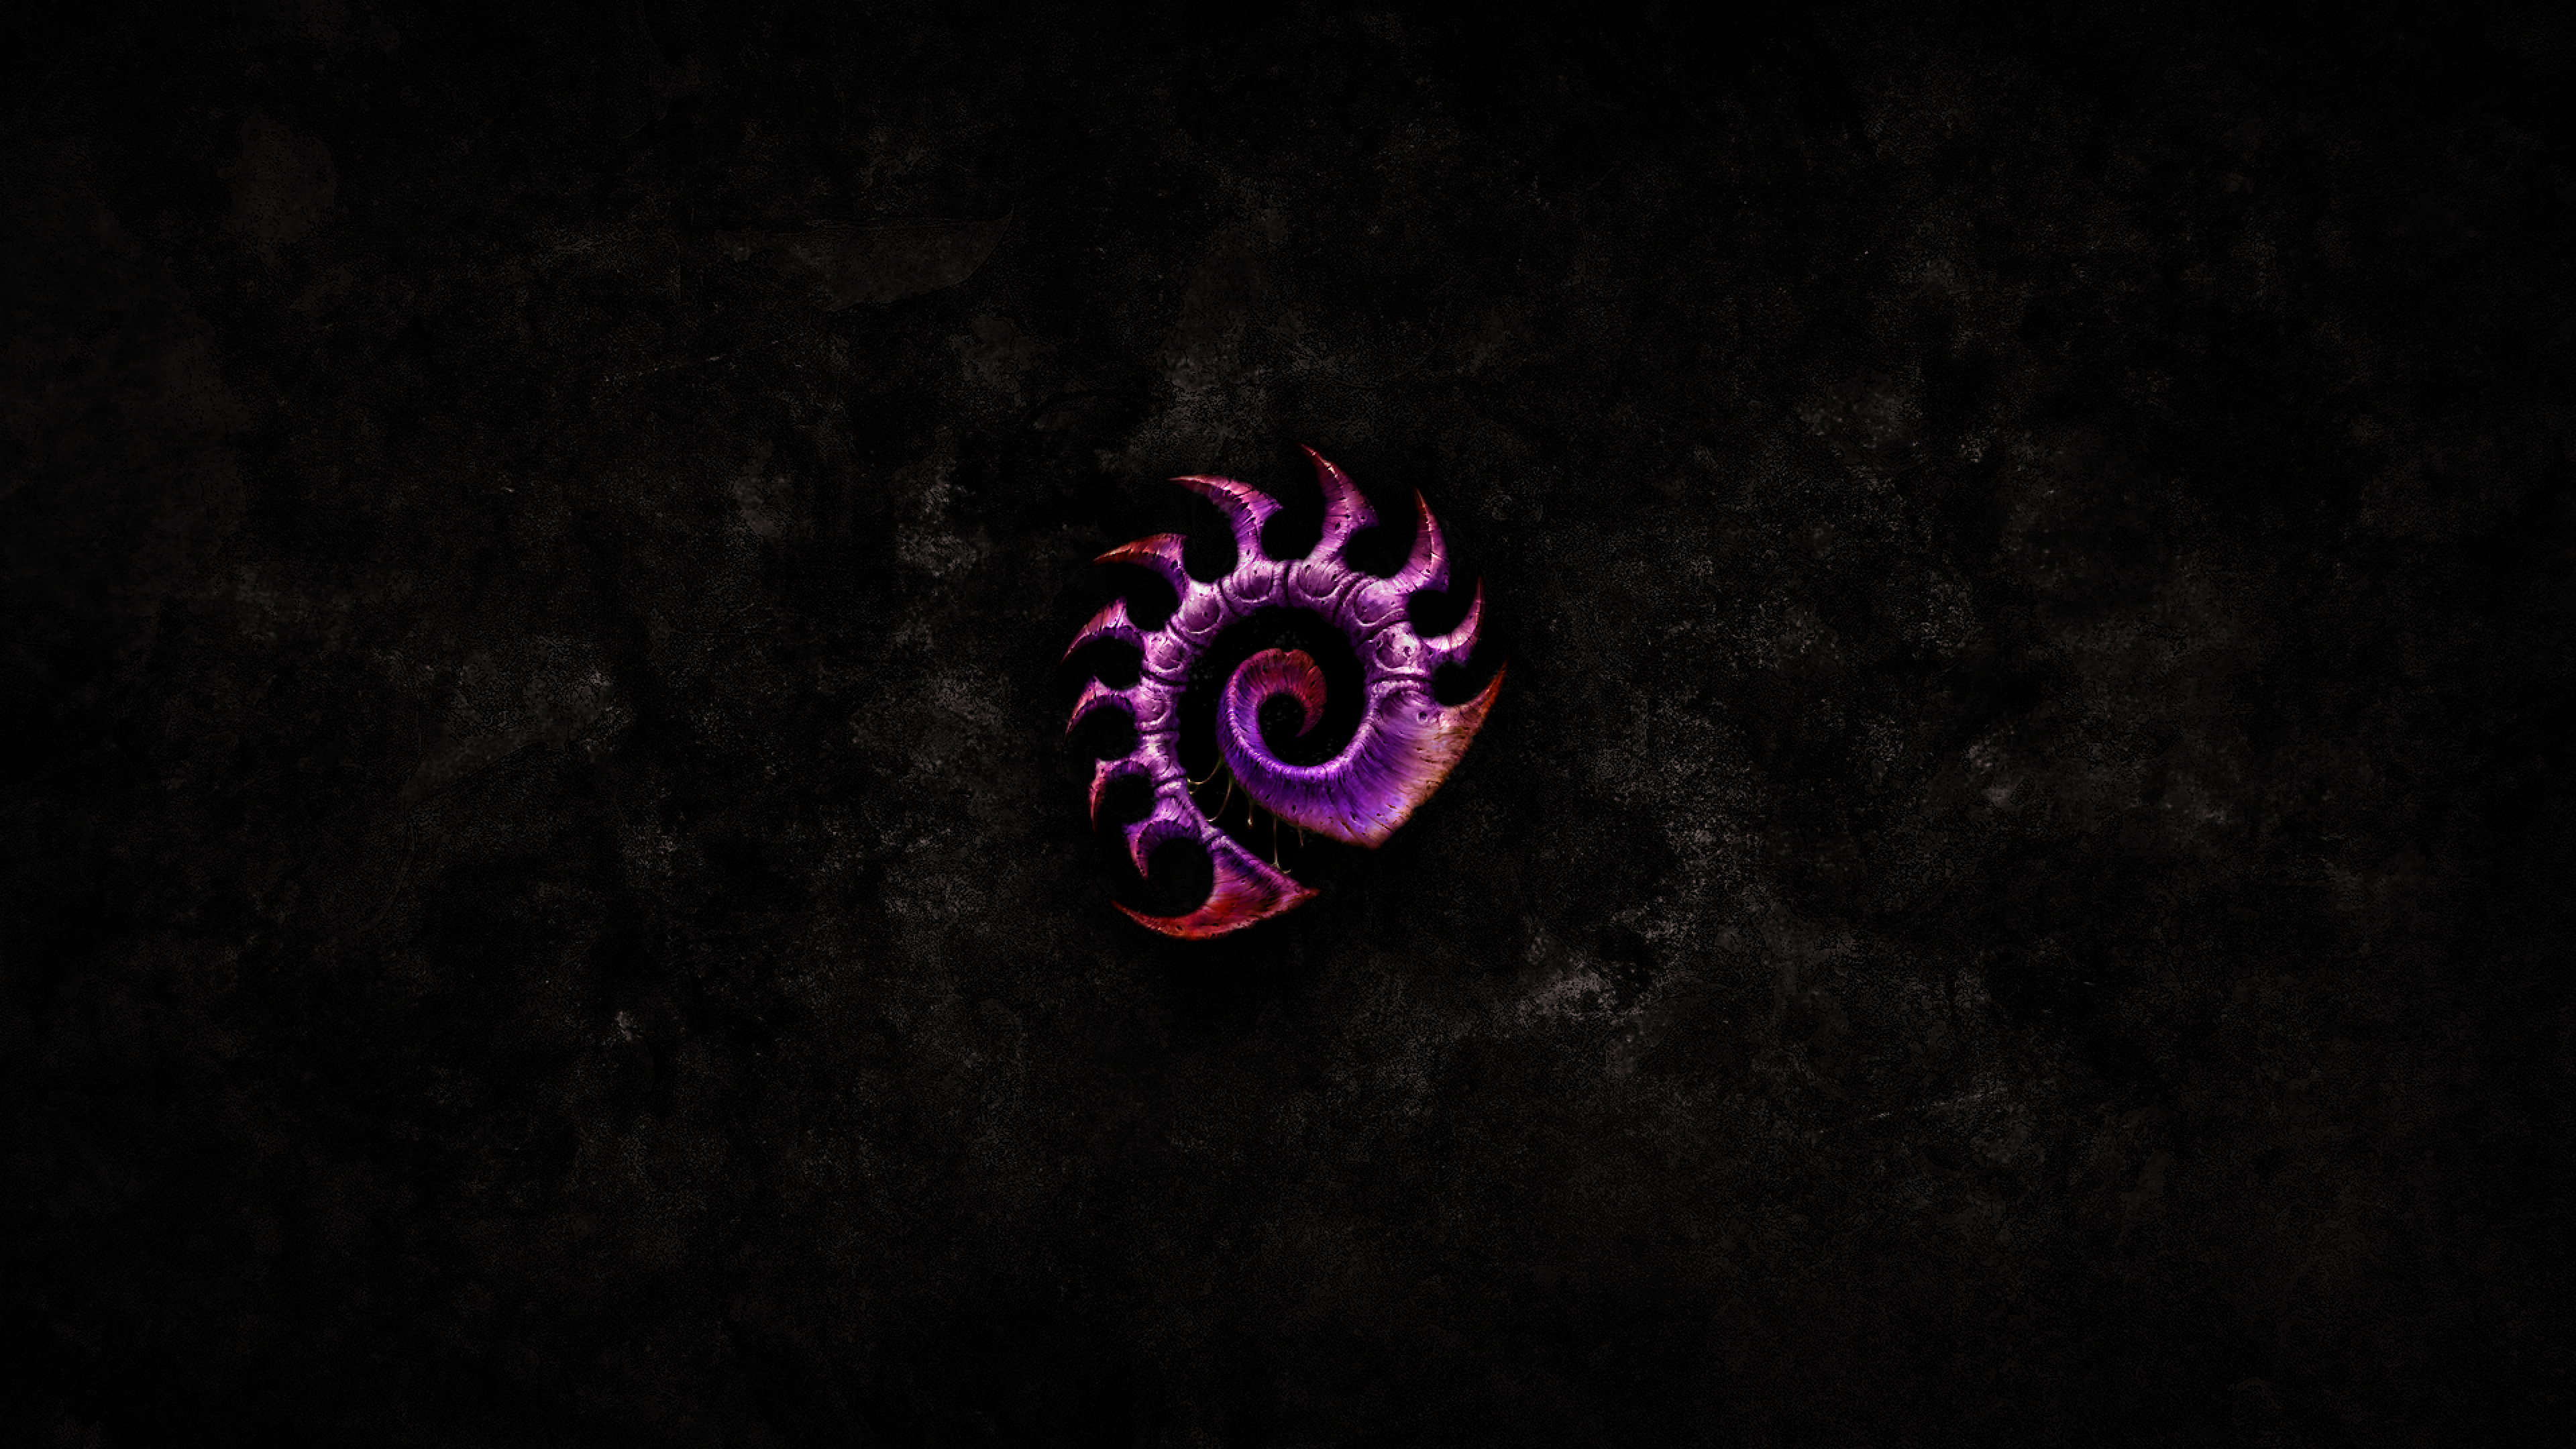 zerg starcraft wallpaper 2560x1440 - photo #8